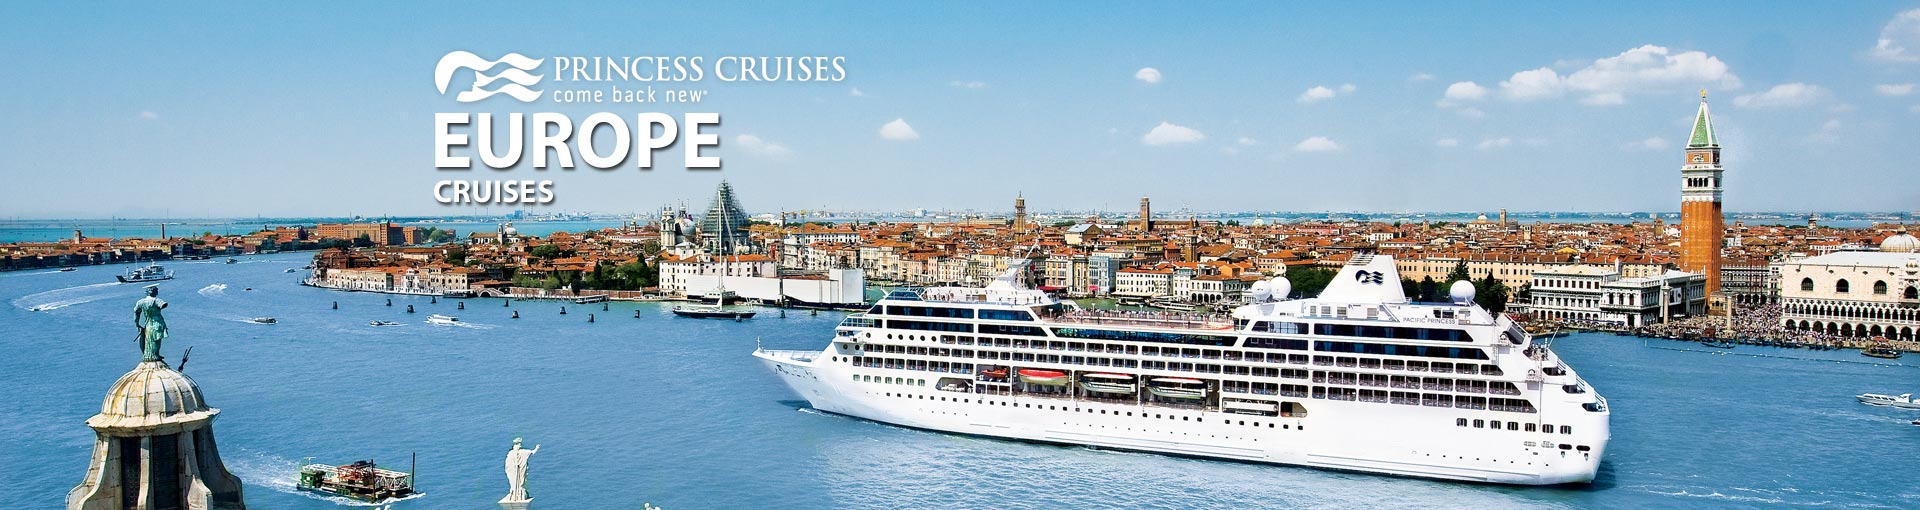 Princess Europe Cruises 2018 And 2019 European